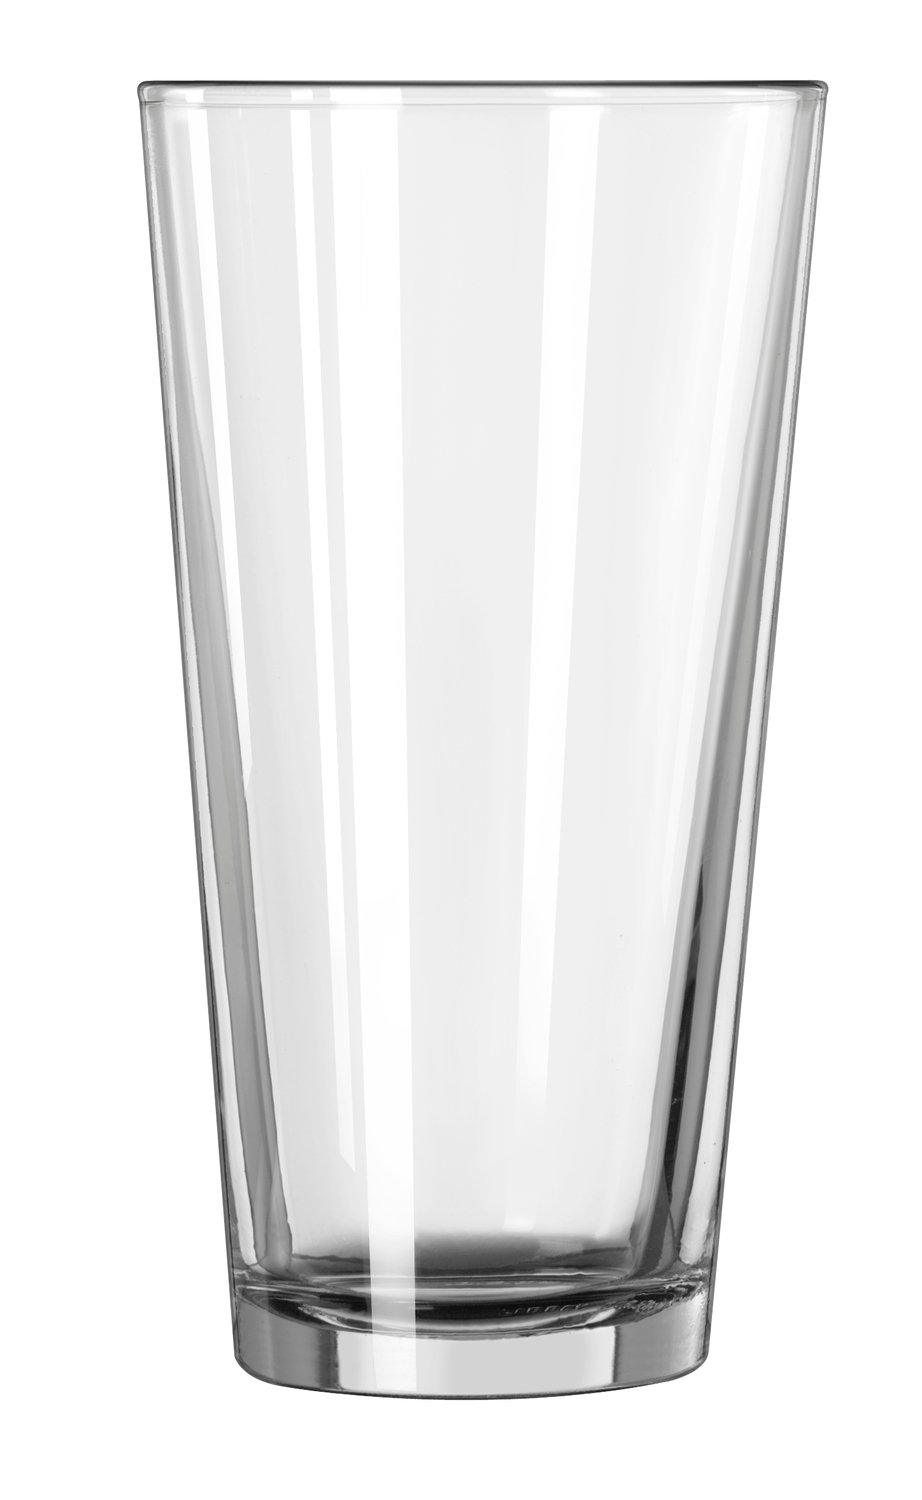 Libbey 15144 Restaurant Basics Mixing Glass, (Duratuff), 20 oz., 6.75'' Height, 3.625'' Width, 6.75'' Length, Large, Clear (Pack of 24)